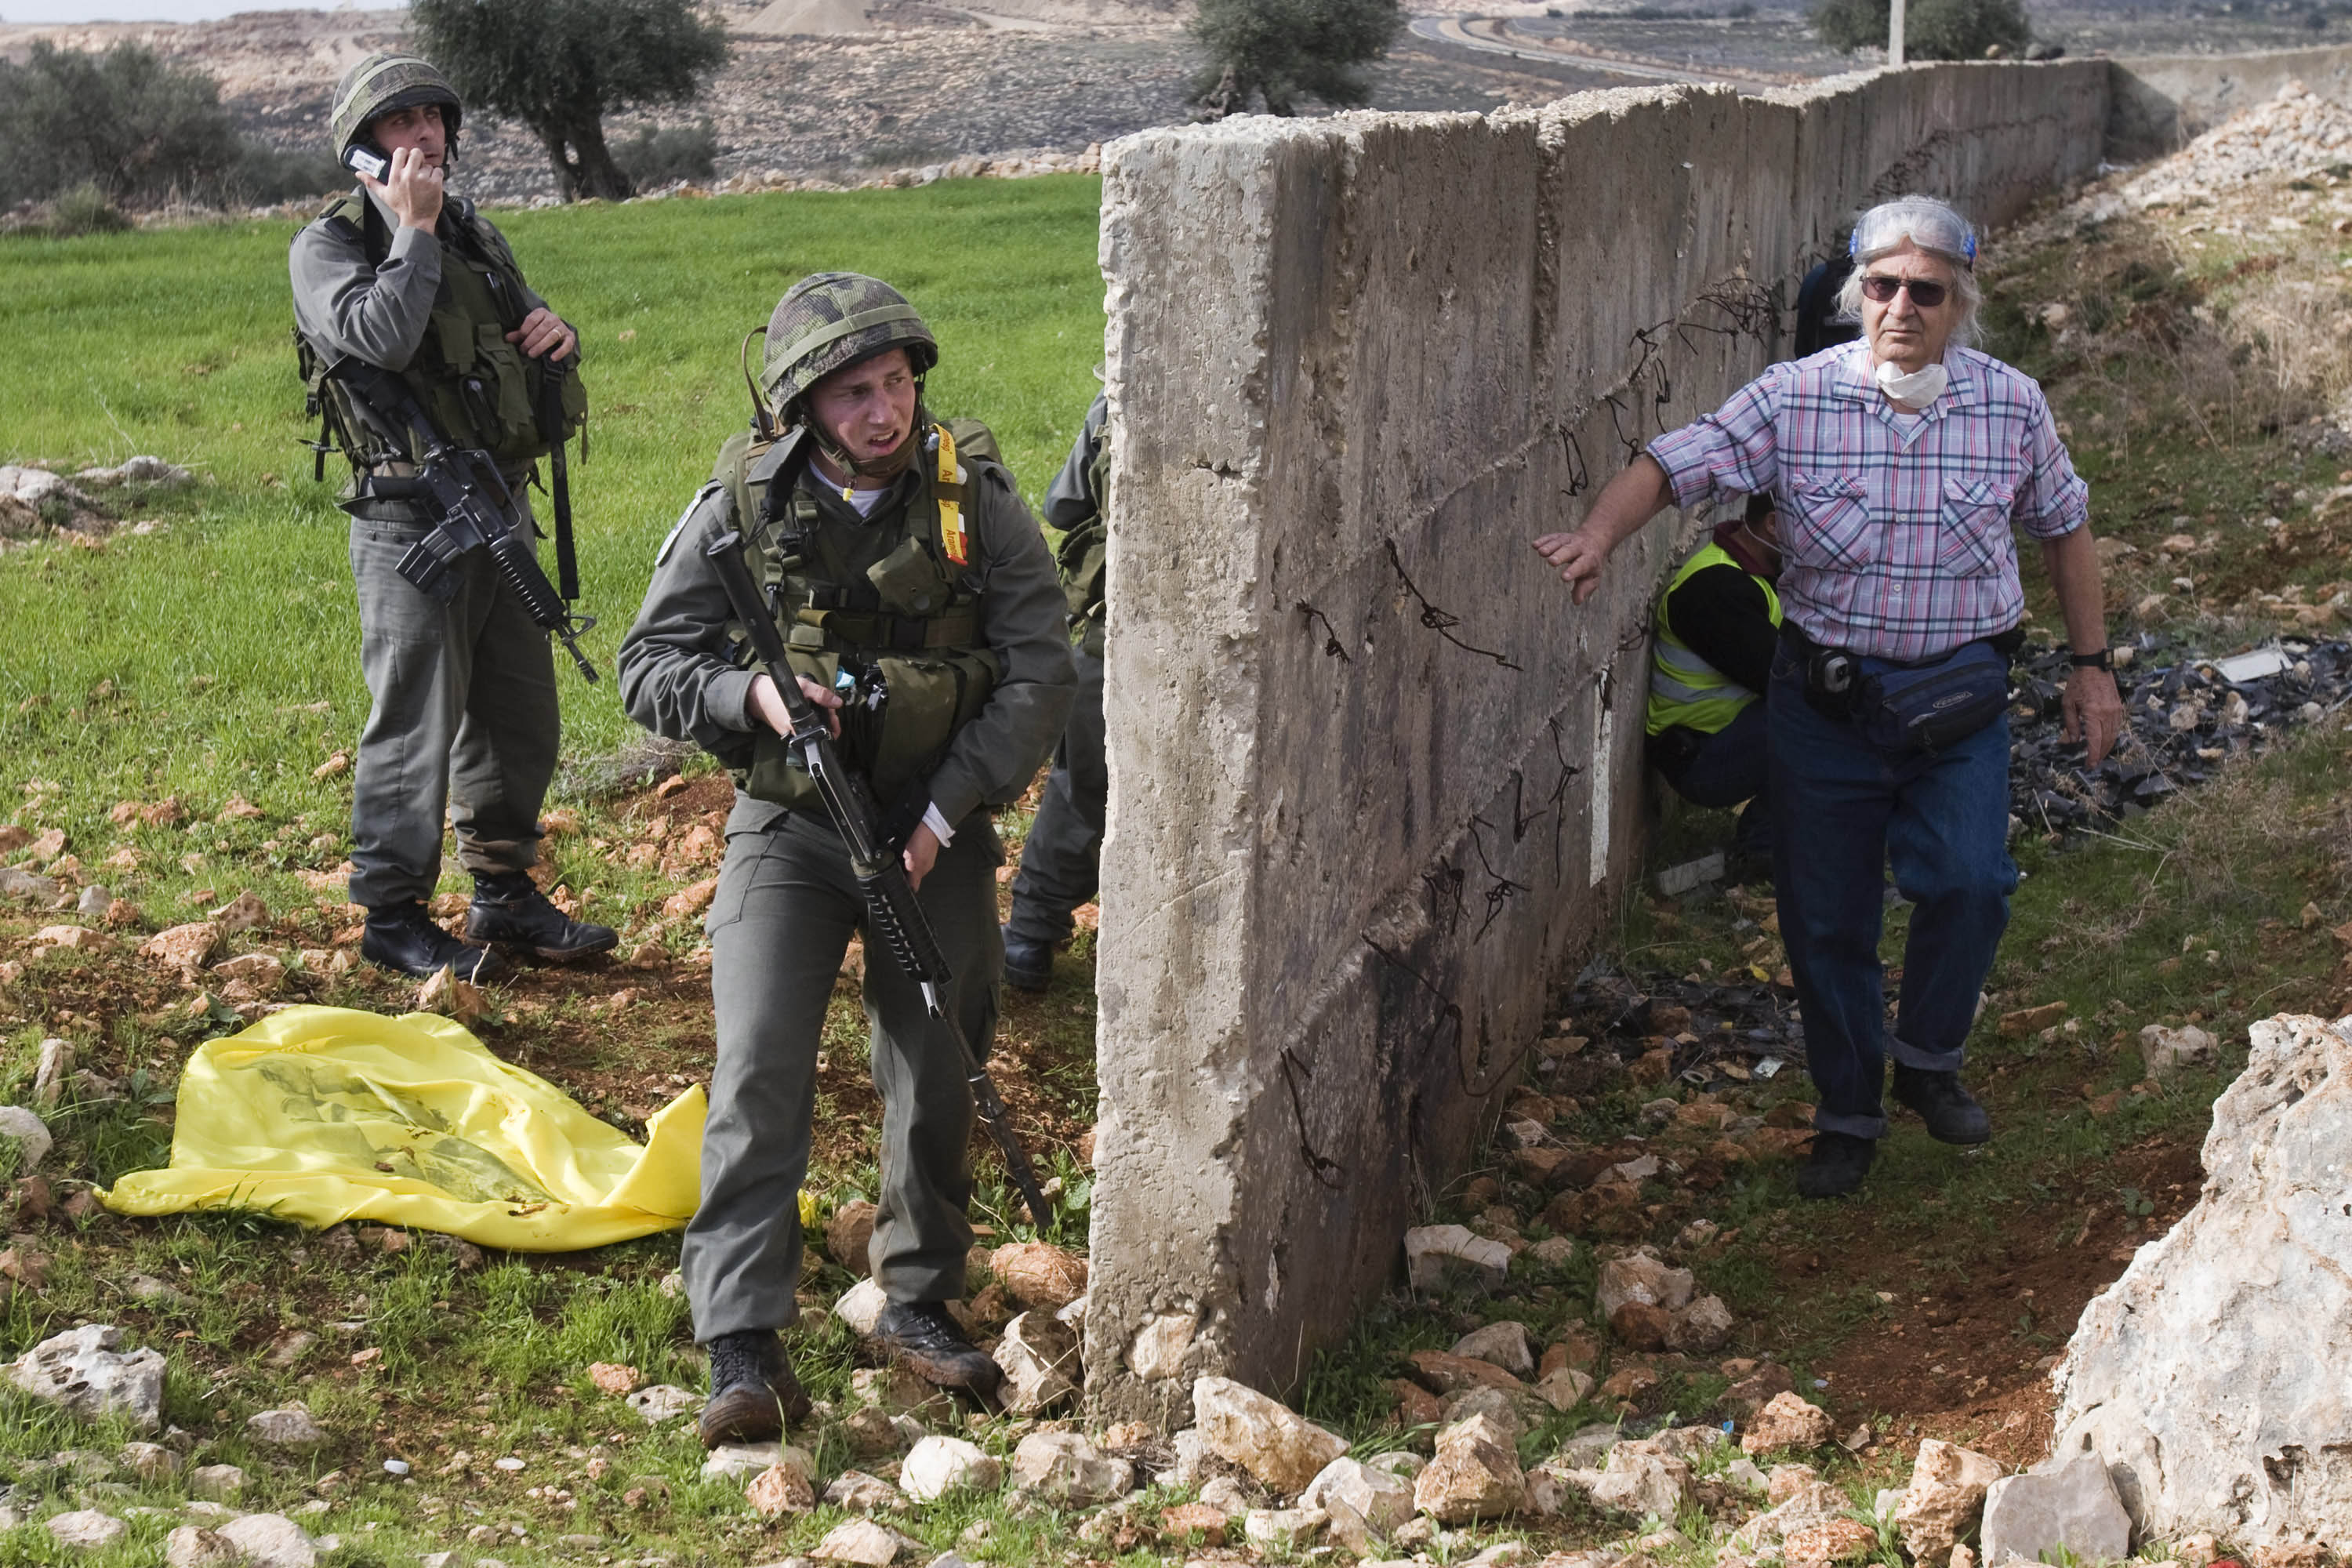 Armed soldiers and a veteran activist intersected during weekly protest against the Wall, Bil'in, West Bank, December 21, 2007